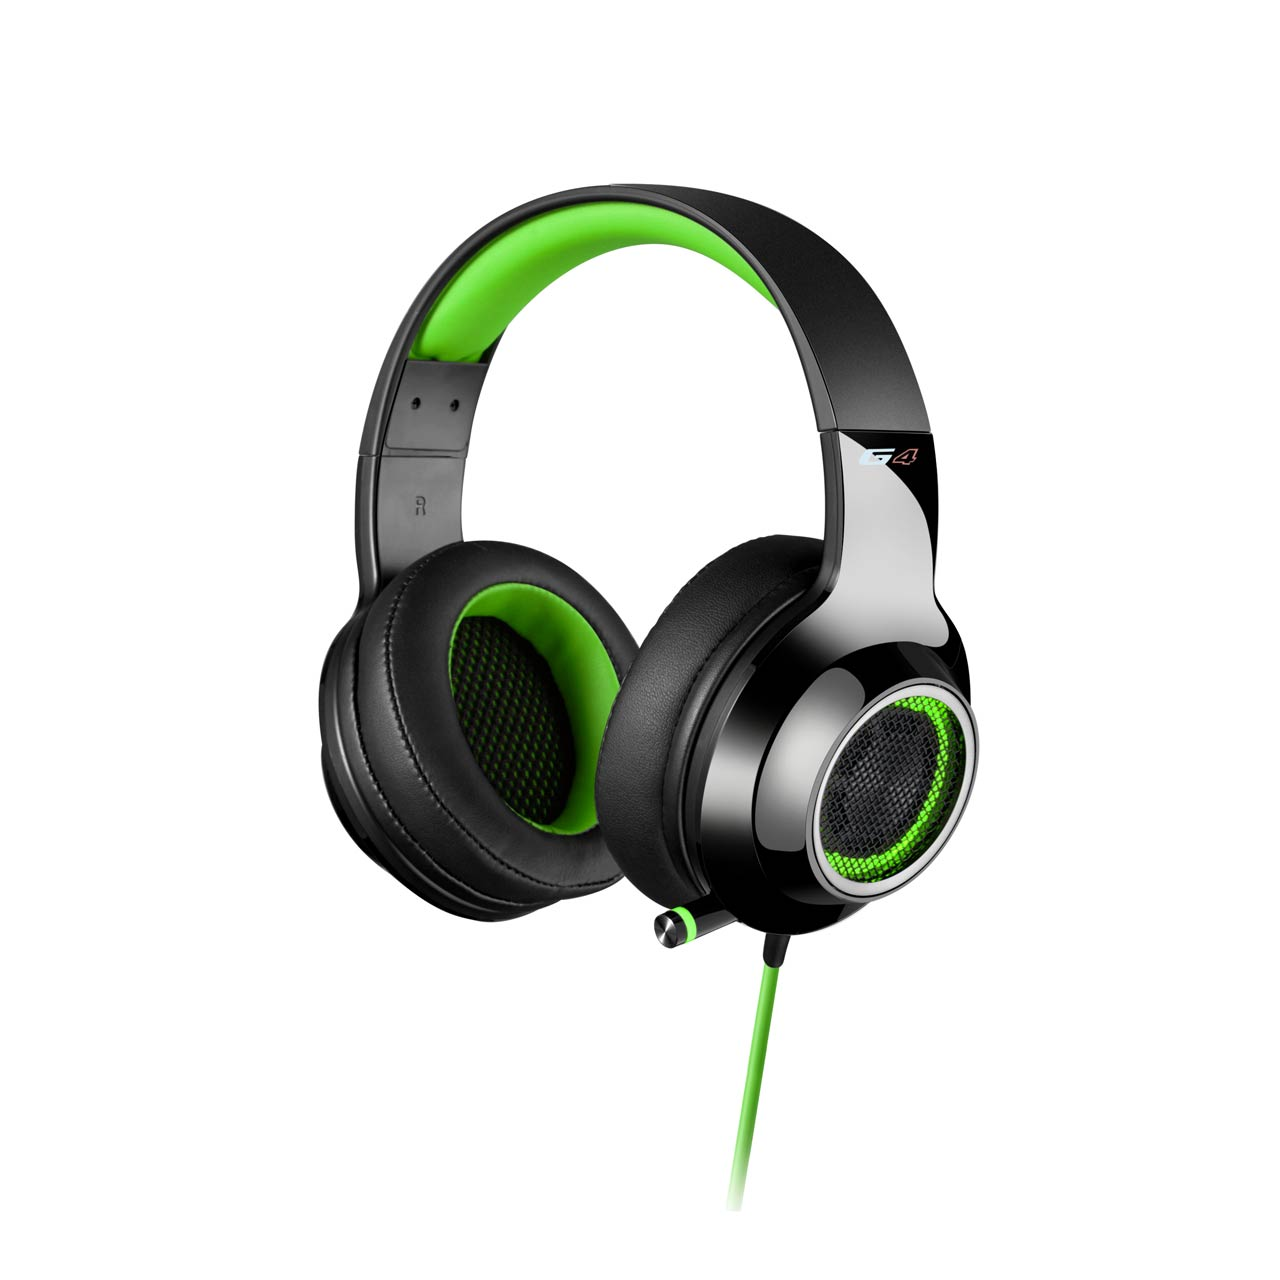 Edifier V4 (G4) 7.1 Virtual Surround Sound USB Gaming Headset Green - V7.1 Surround Sound/ Retractable Mic/LED Lights Mesh/USB/Gaming/PC/Laptop